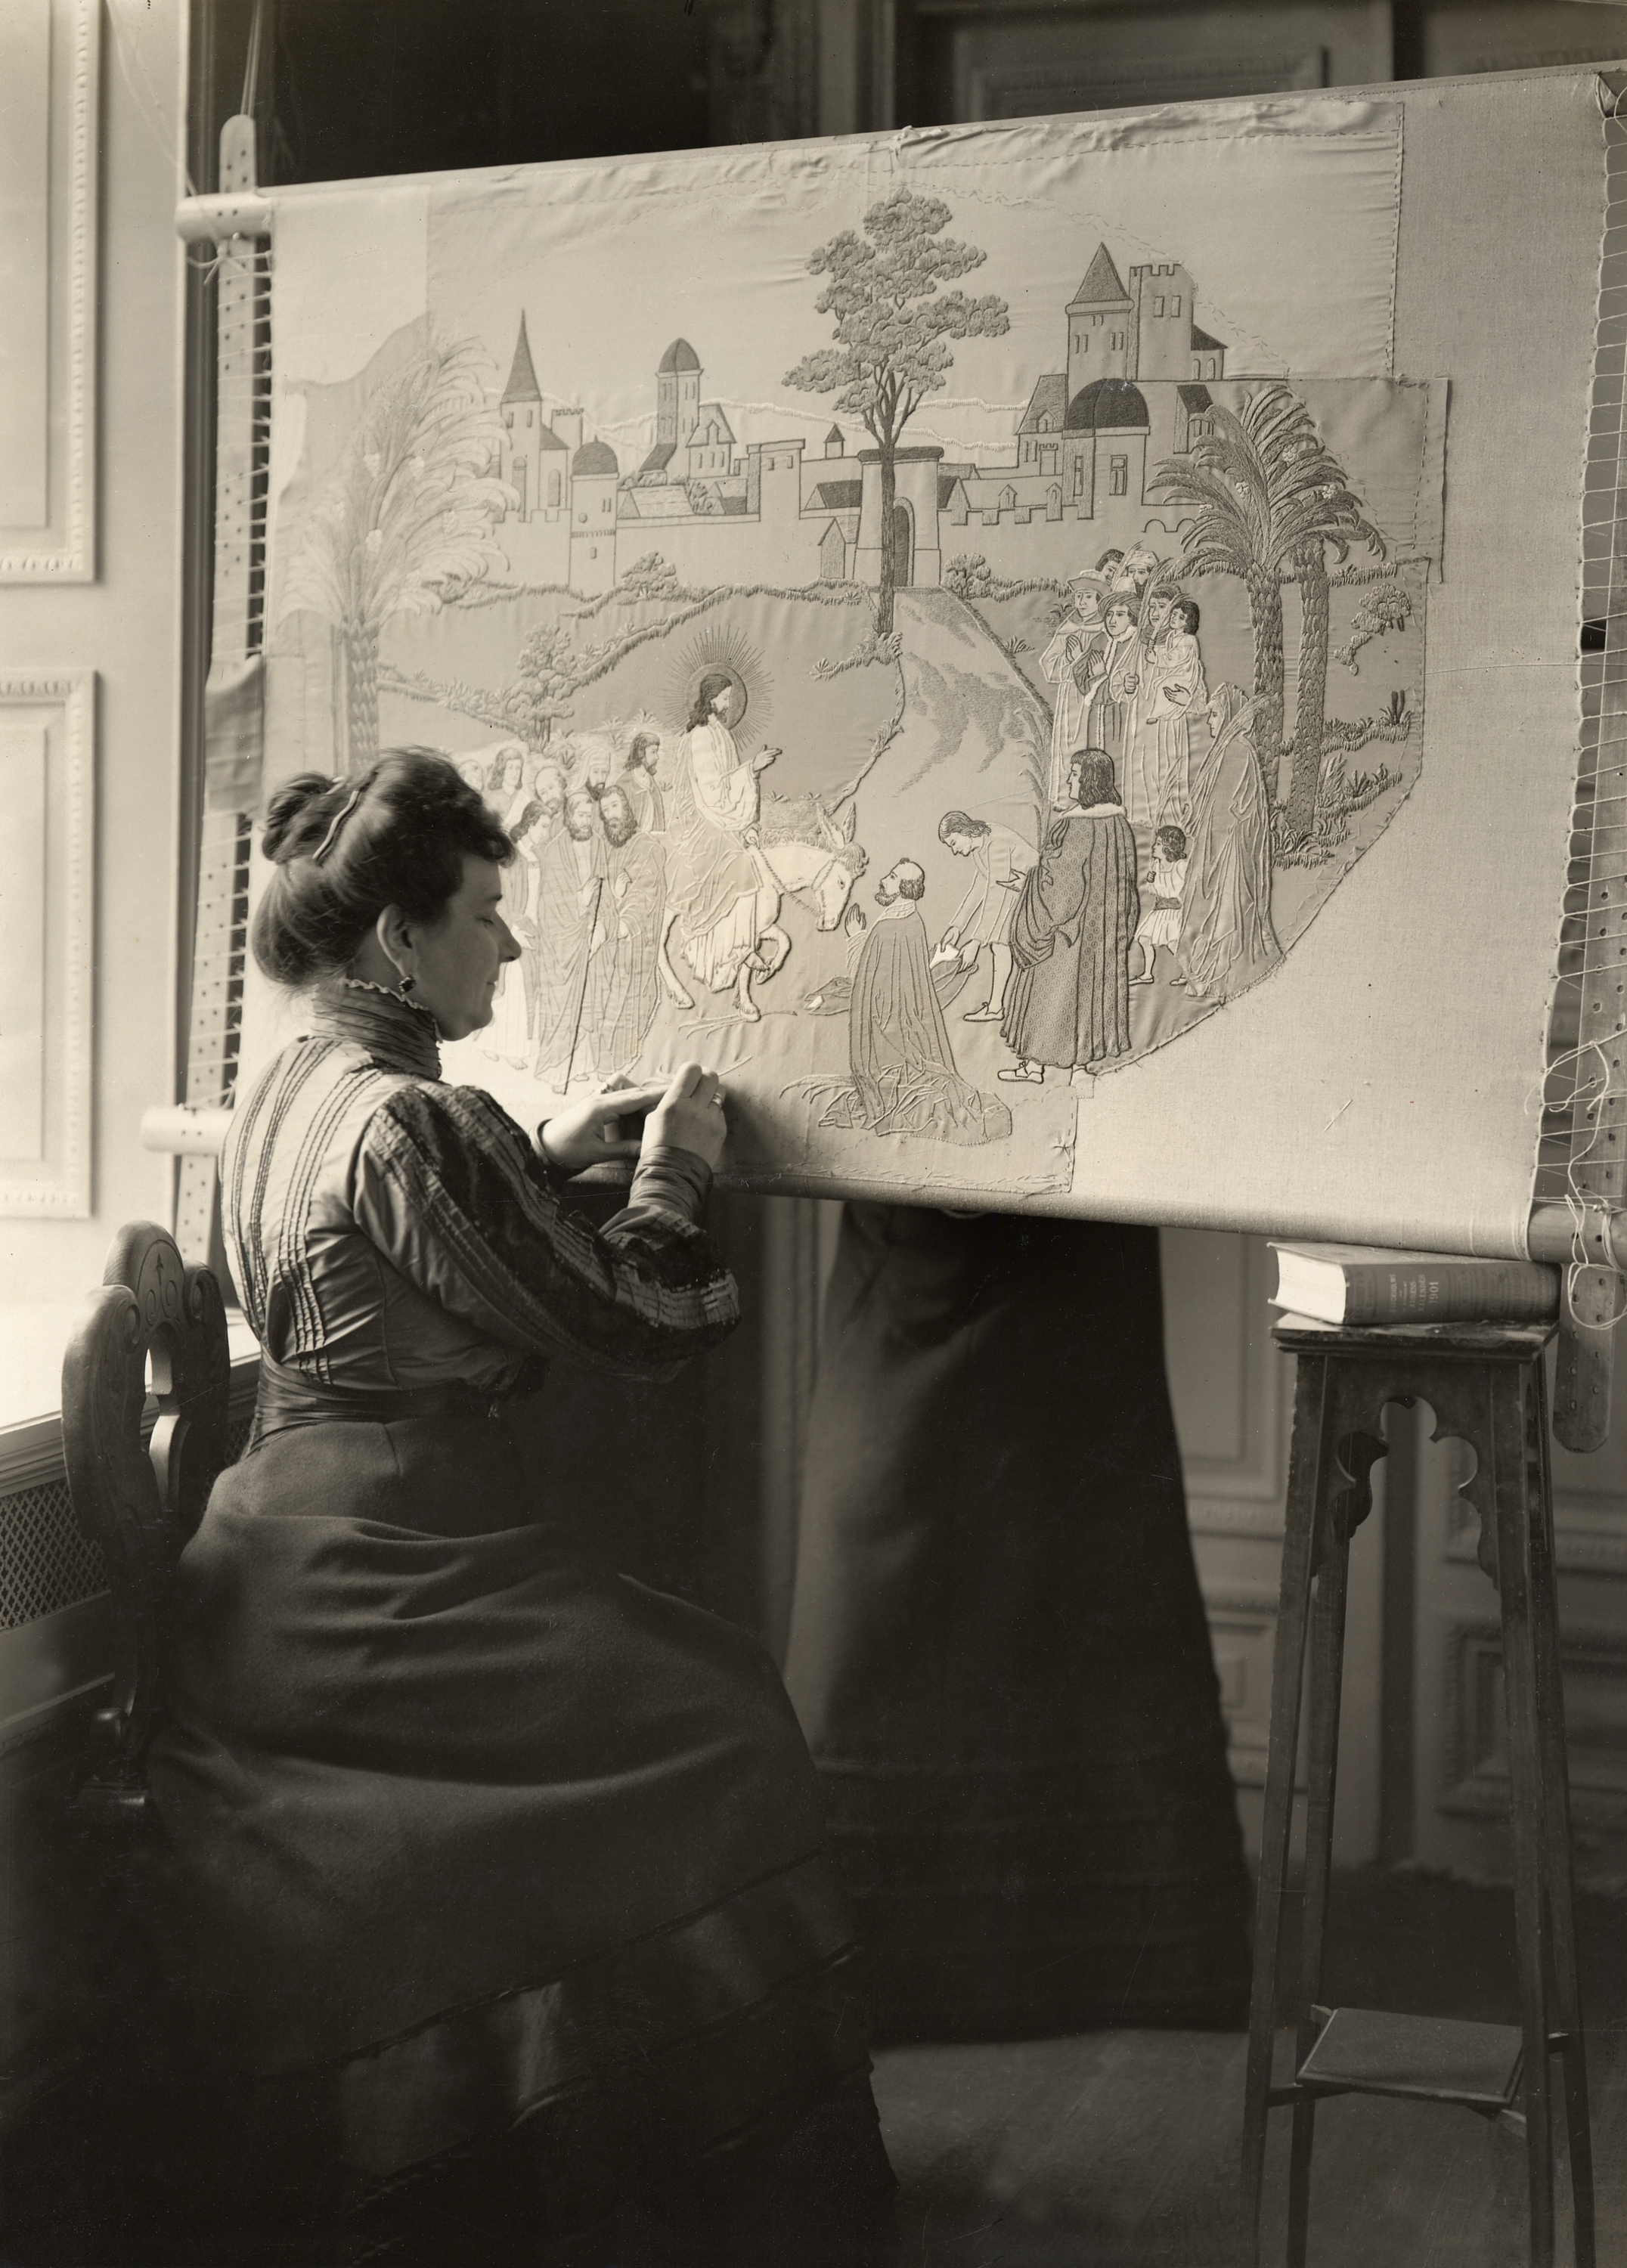 A woman, assumed to be Mimmi Börjesson, working on an embroidery, 1902. Photo: Anton Blomberg (1862-1936). Nordiska museet, NMA.0073207